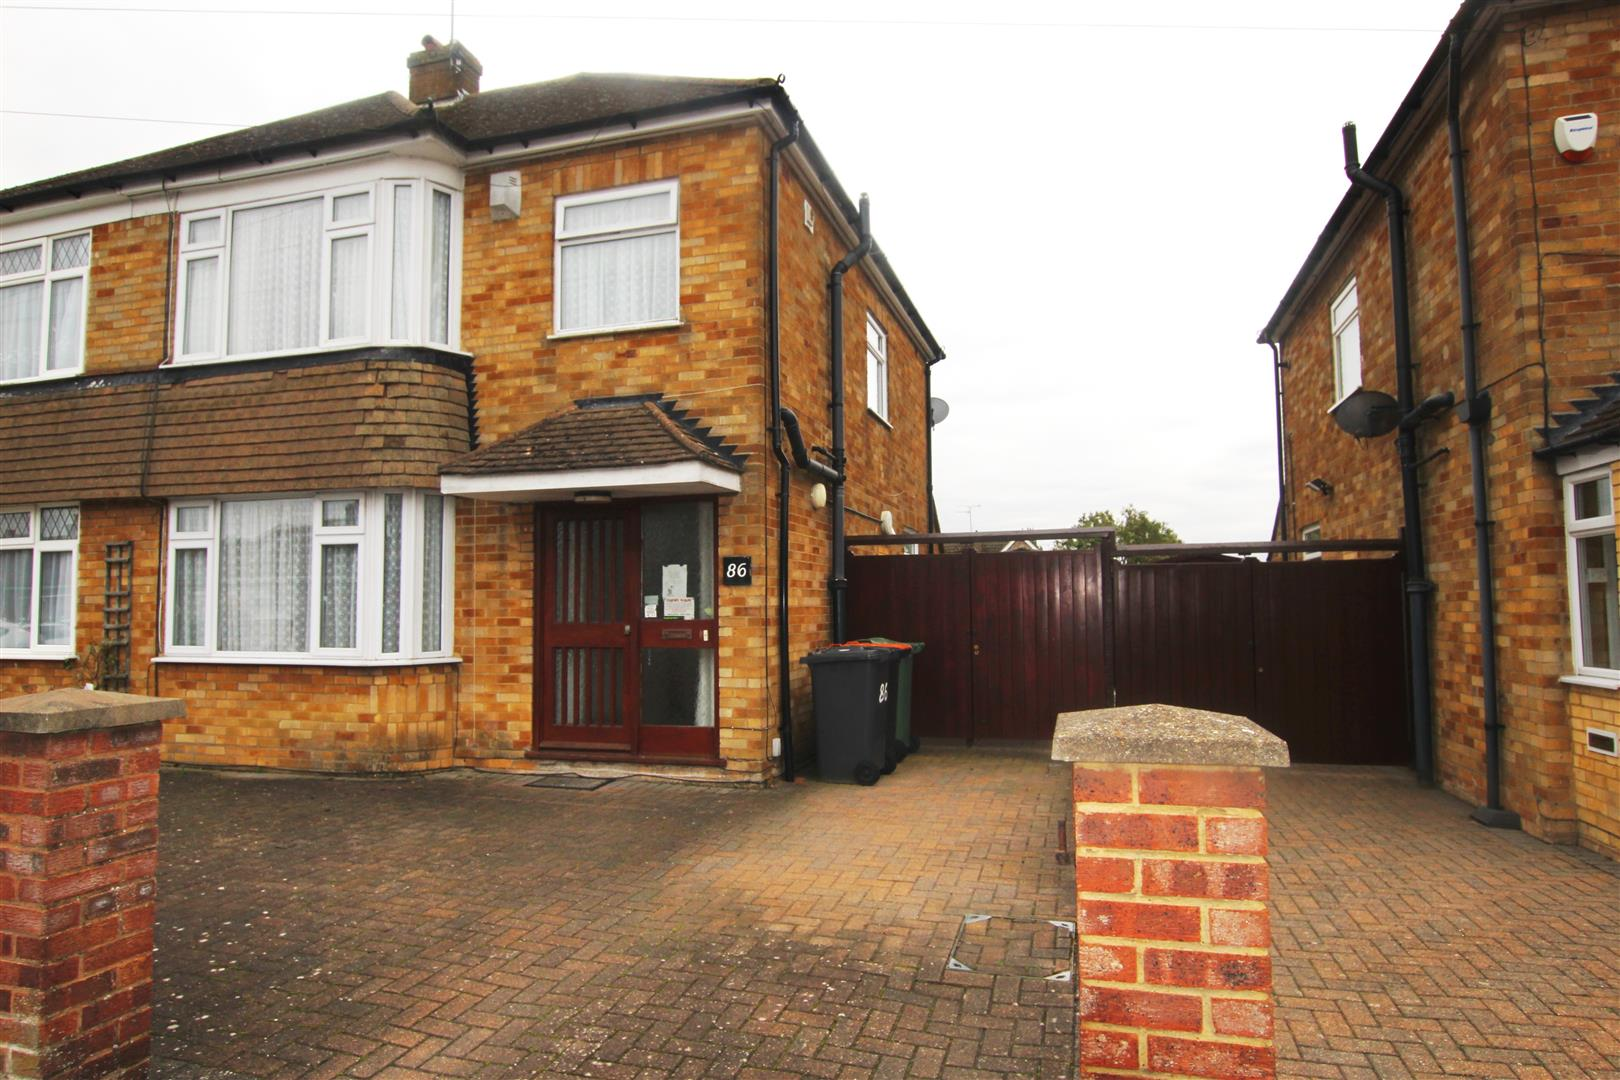 3 Bedrooms Semi Detached House for sale in Leafields, Houghton Regis, Dunstable